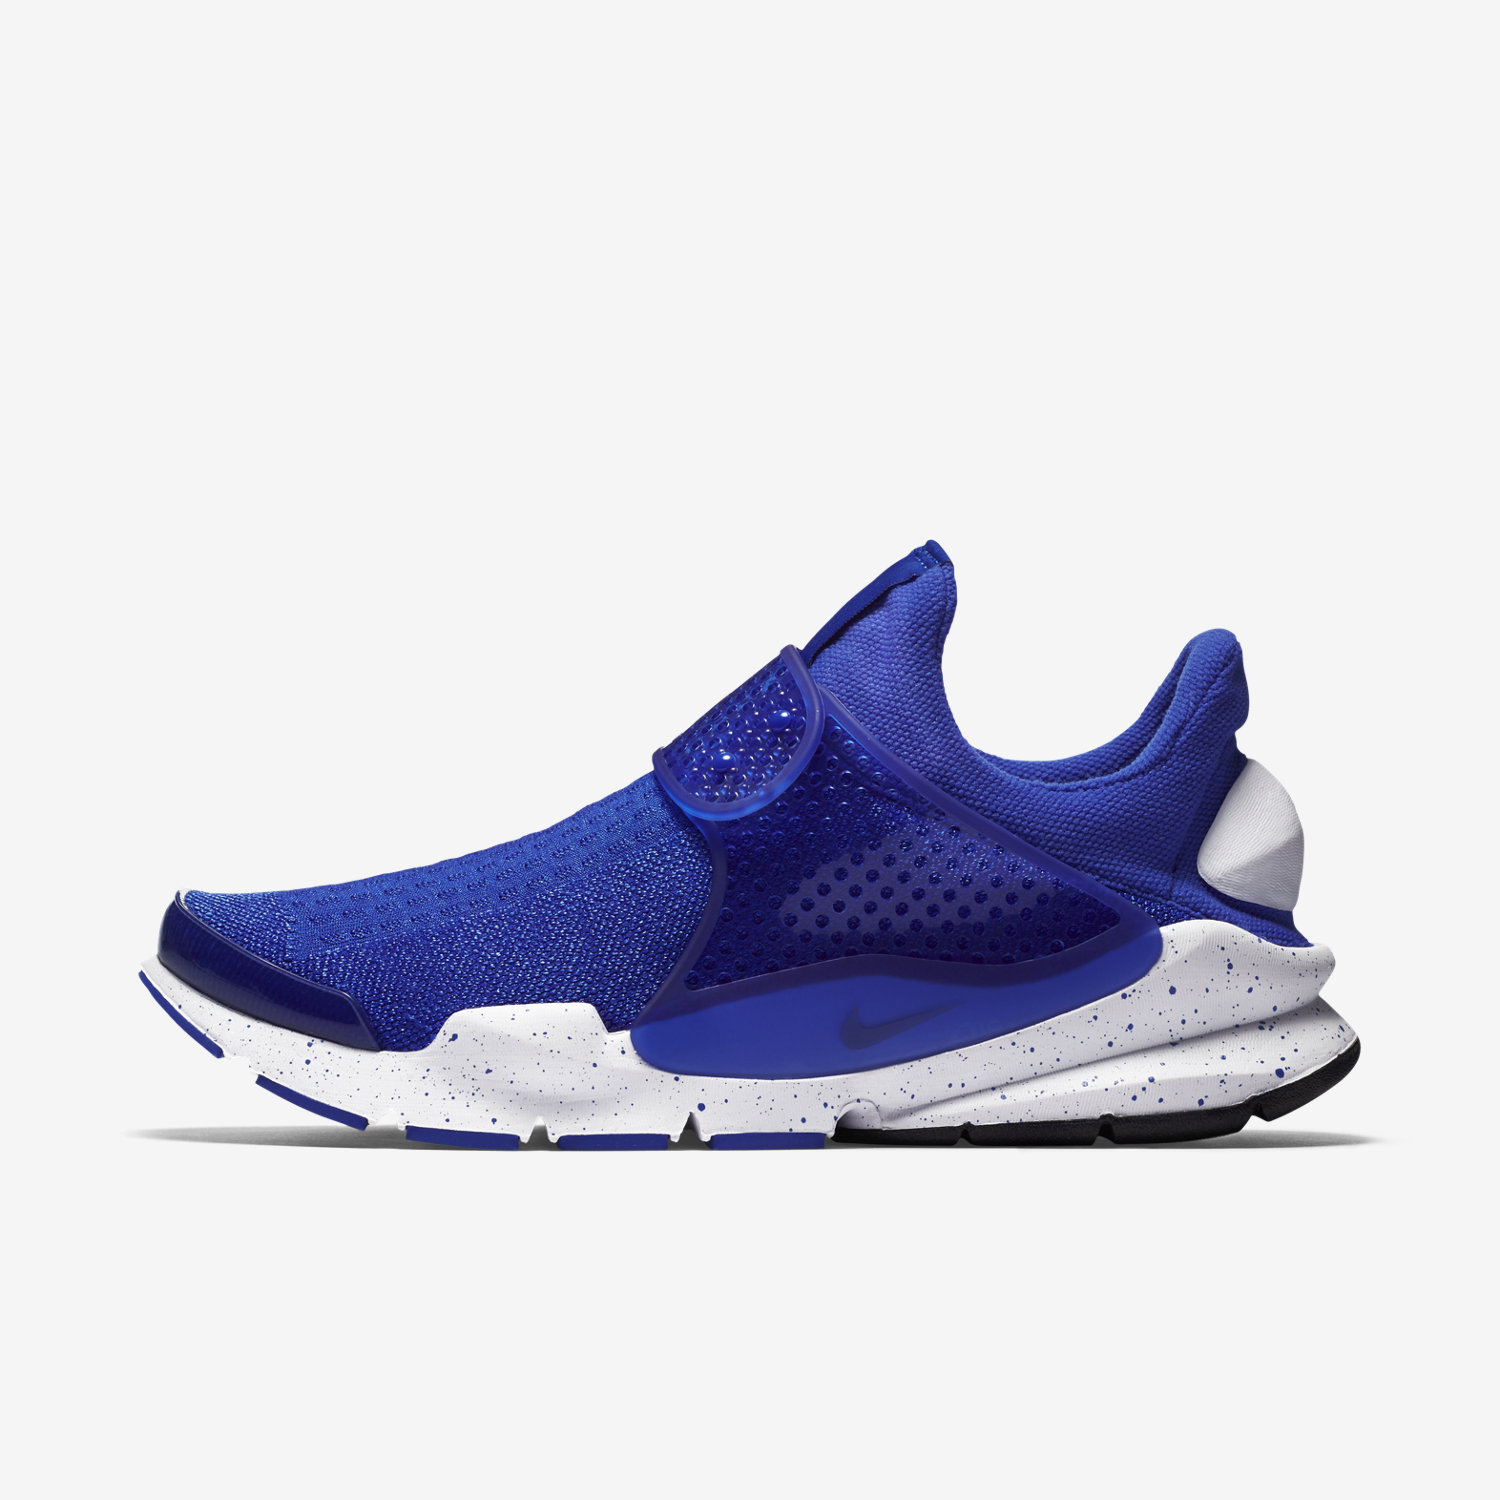 nike shox ii chaussures de golf - Nike Sock Dart SE Men's Shoe. Nike.com UK